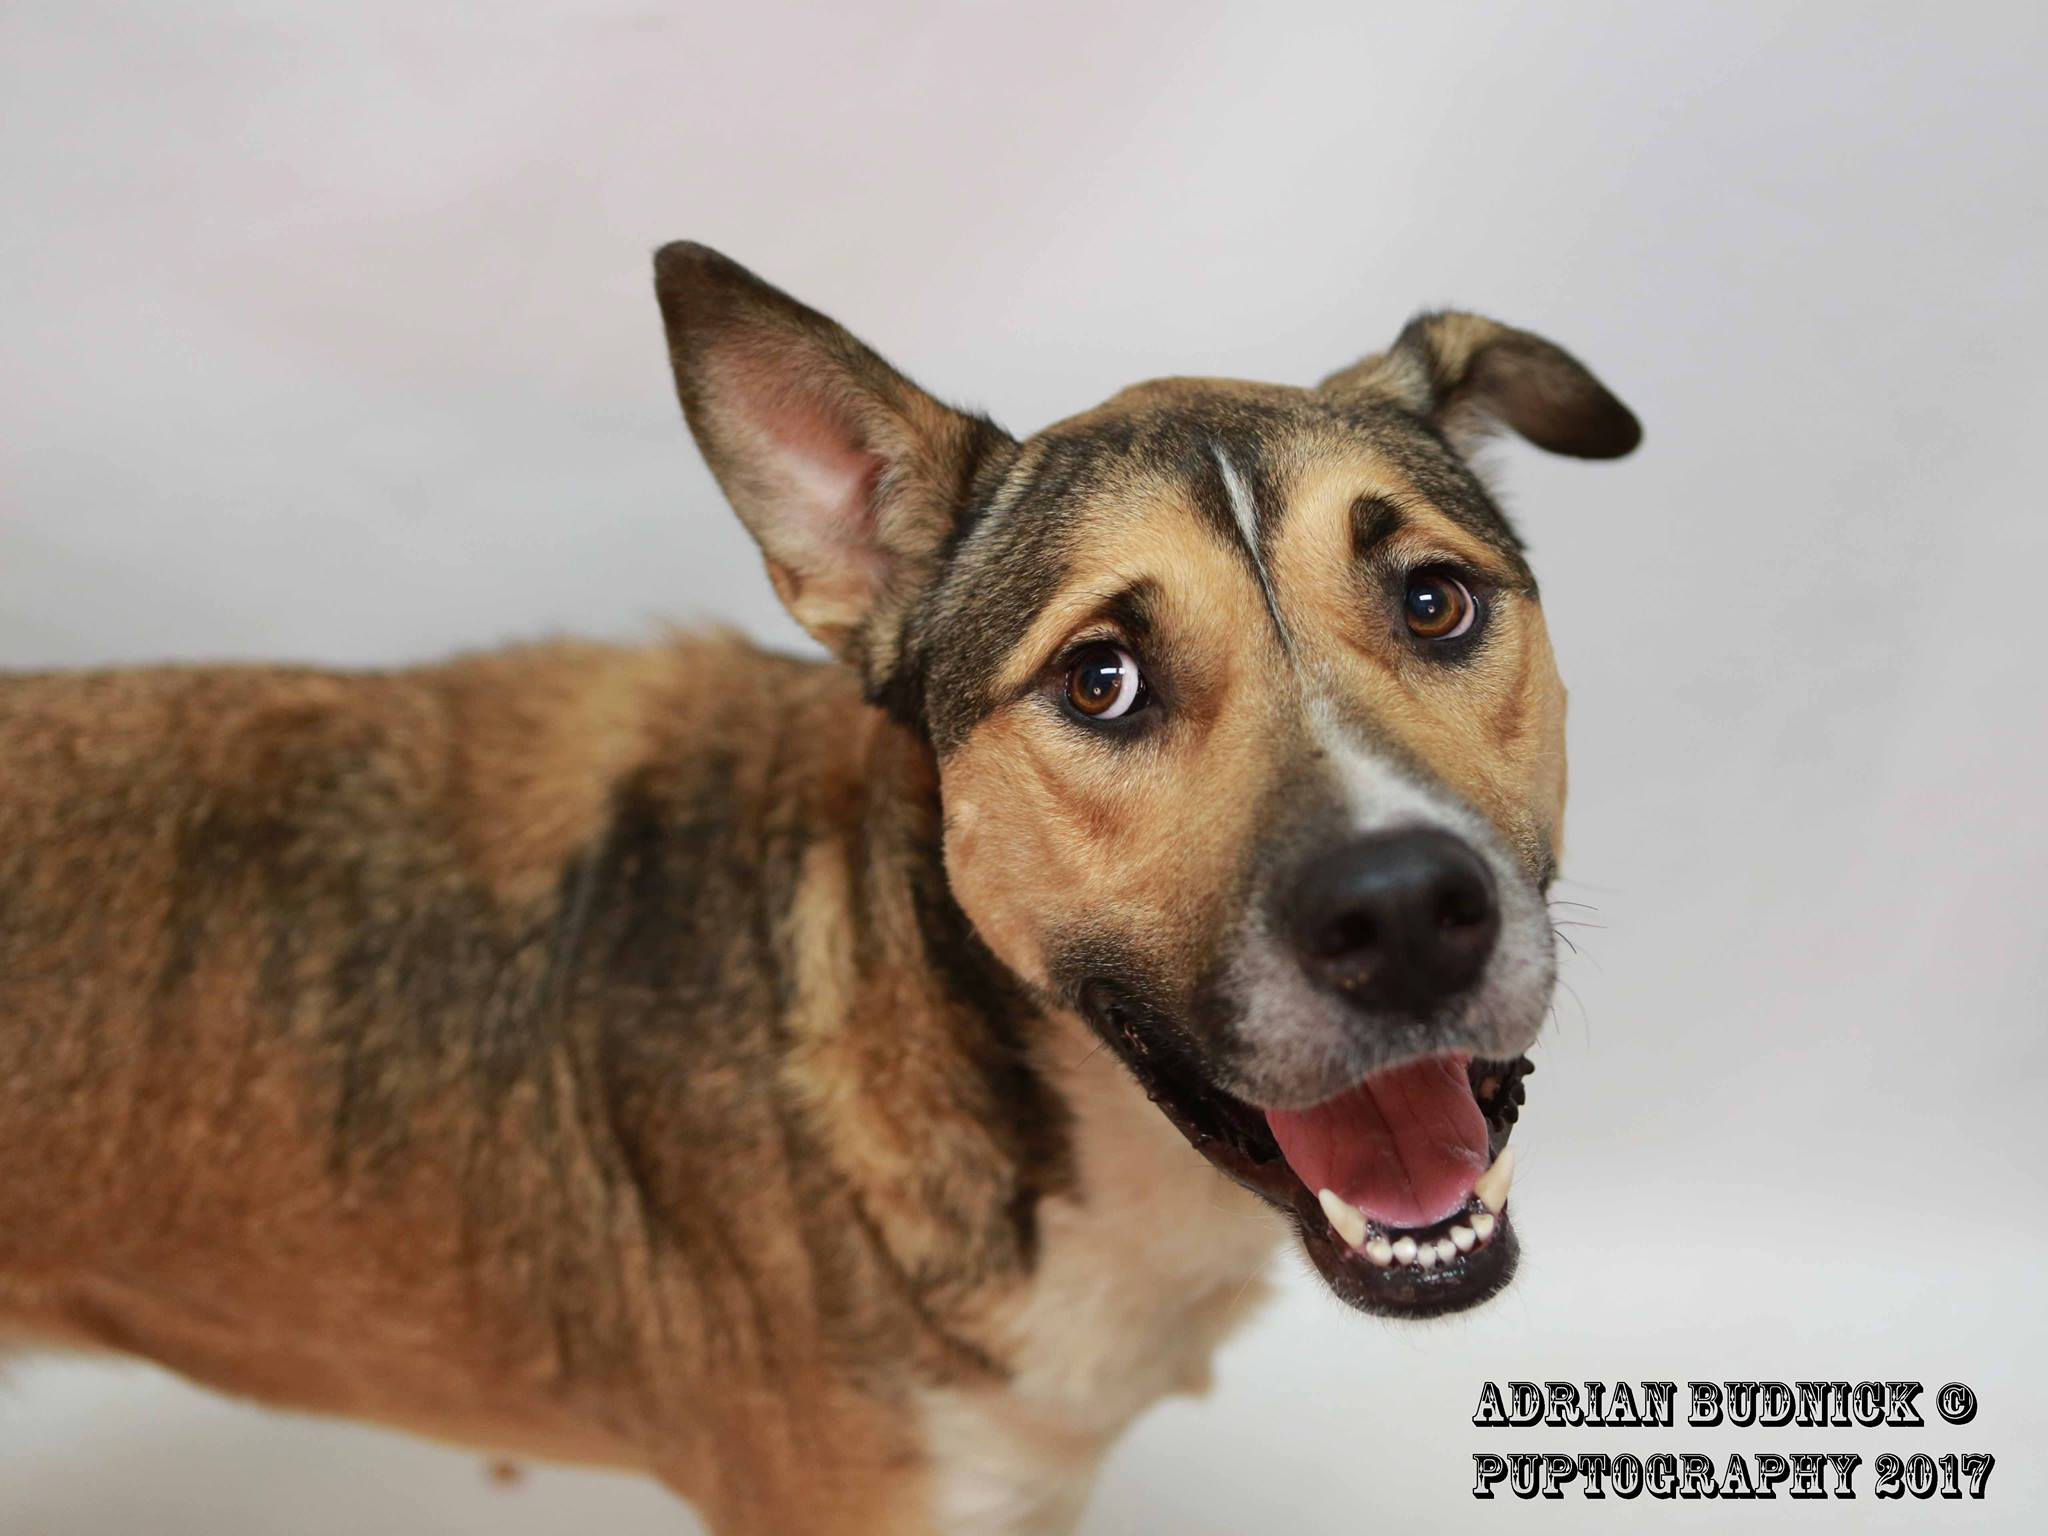 Darcy A176998 is a 3 year old german shepherd mix. She is available at Metro Nashville Animal Care and Control